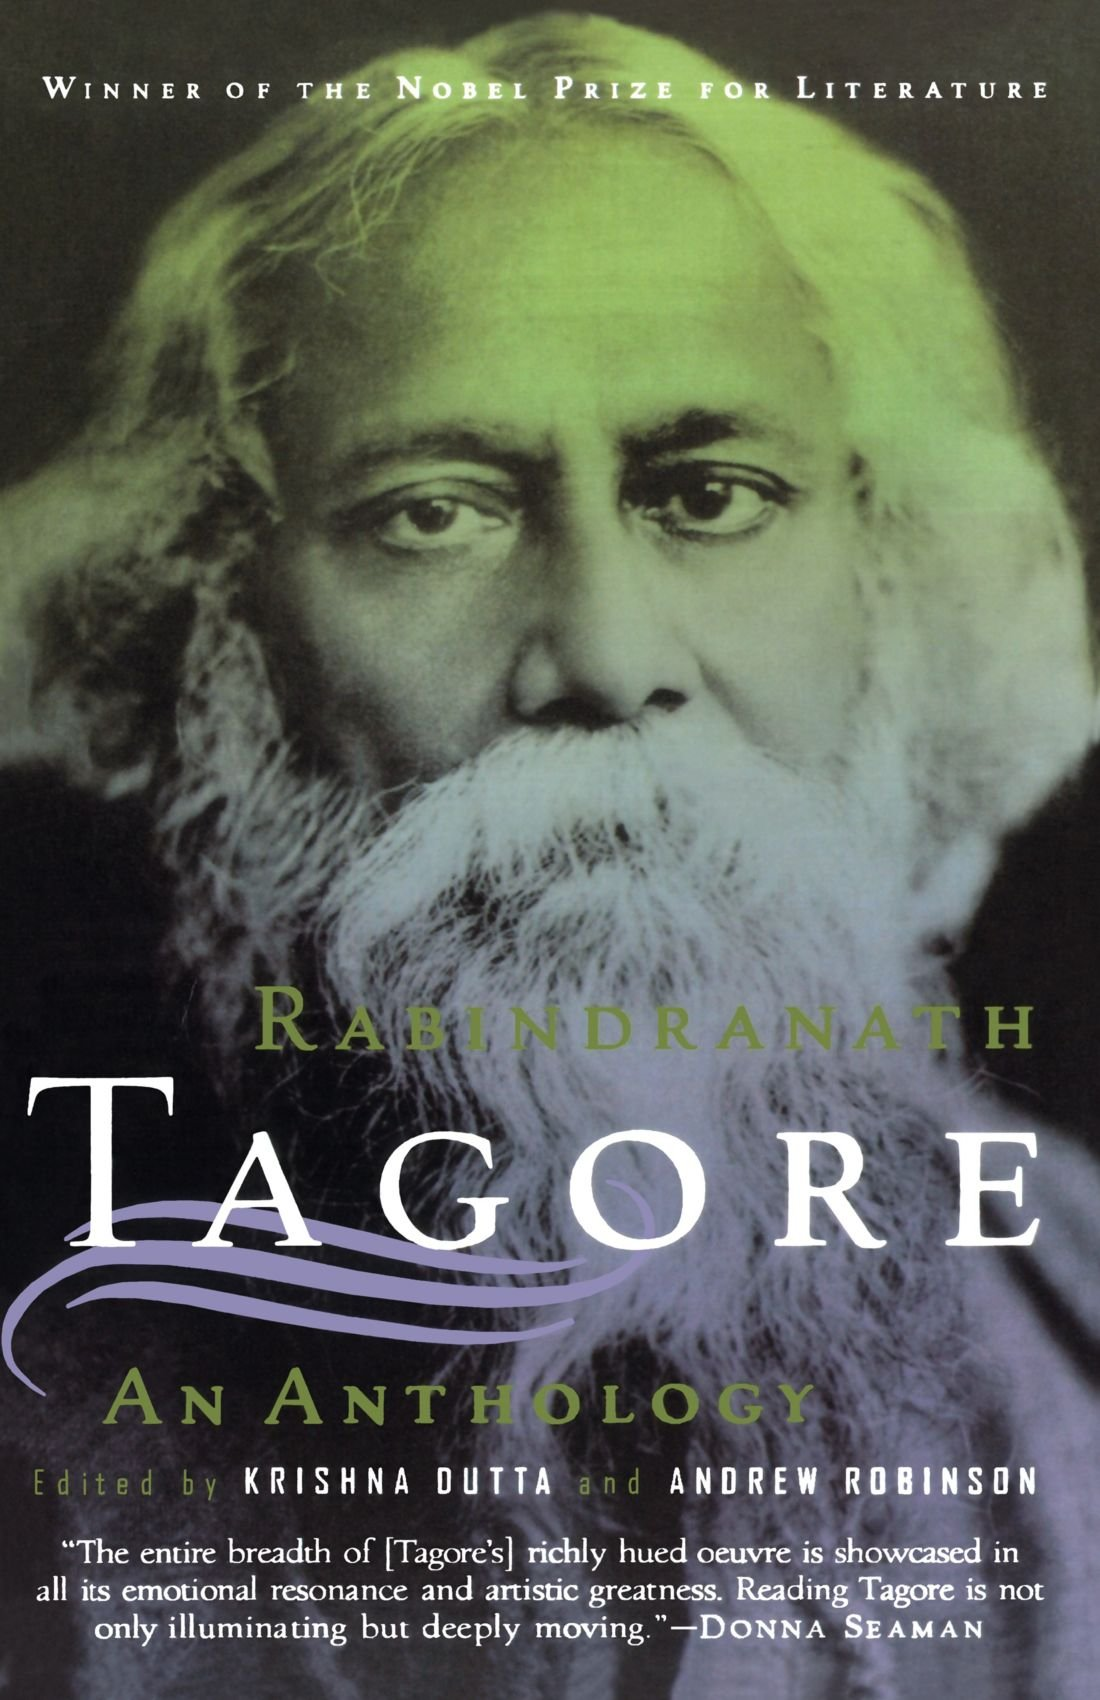 amazon com rabindranath tagore an anthology  amazon com rabindranath tagore an anthology 9780312200794 rabindranath tagore krishna dutta andrew robinson books